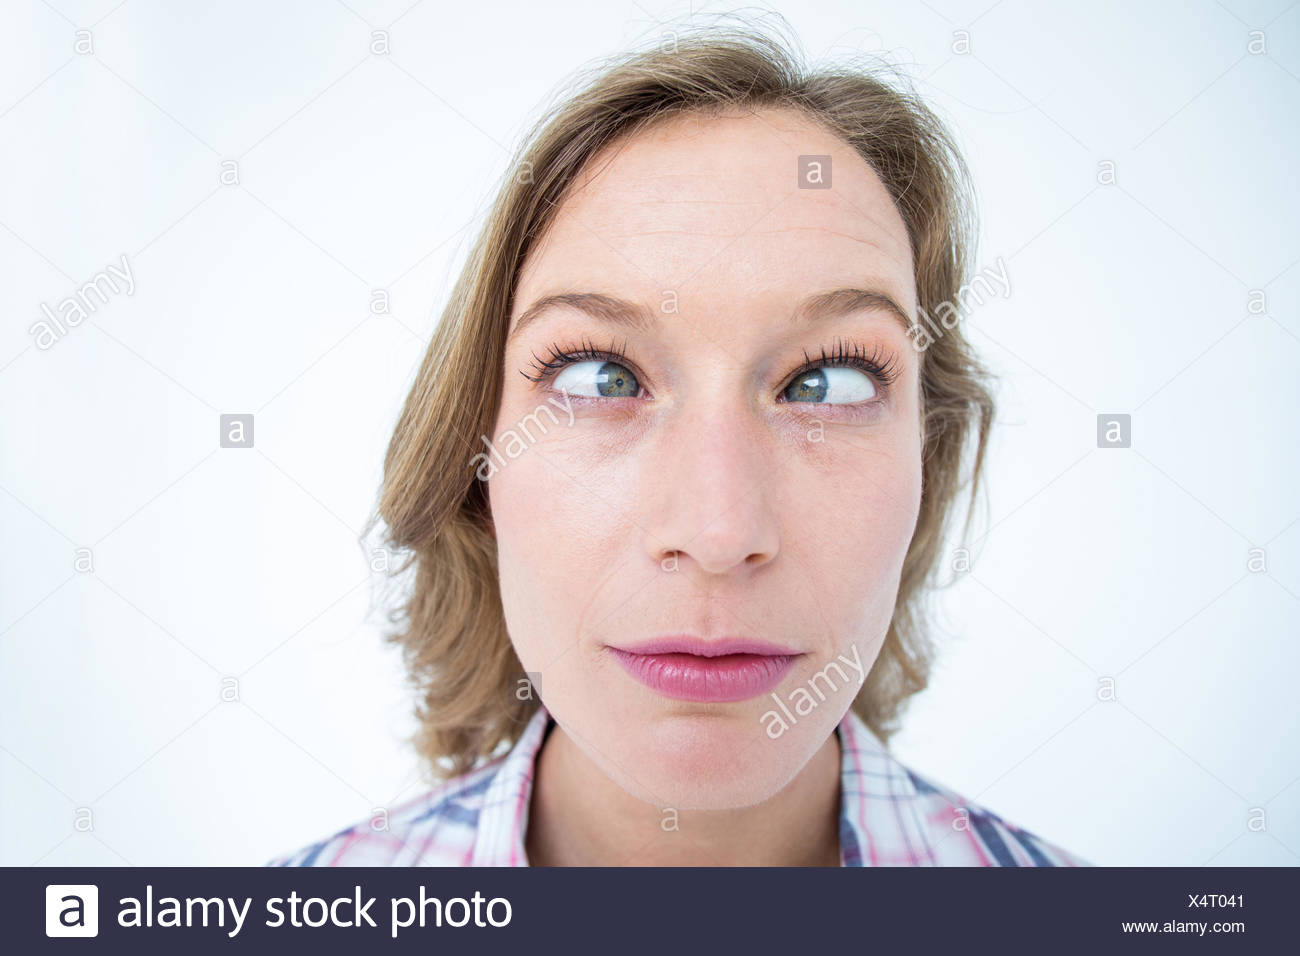 Funny hipster grimacing - Stock Image